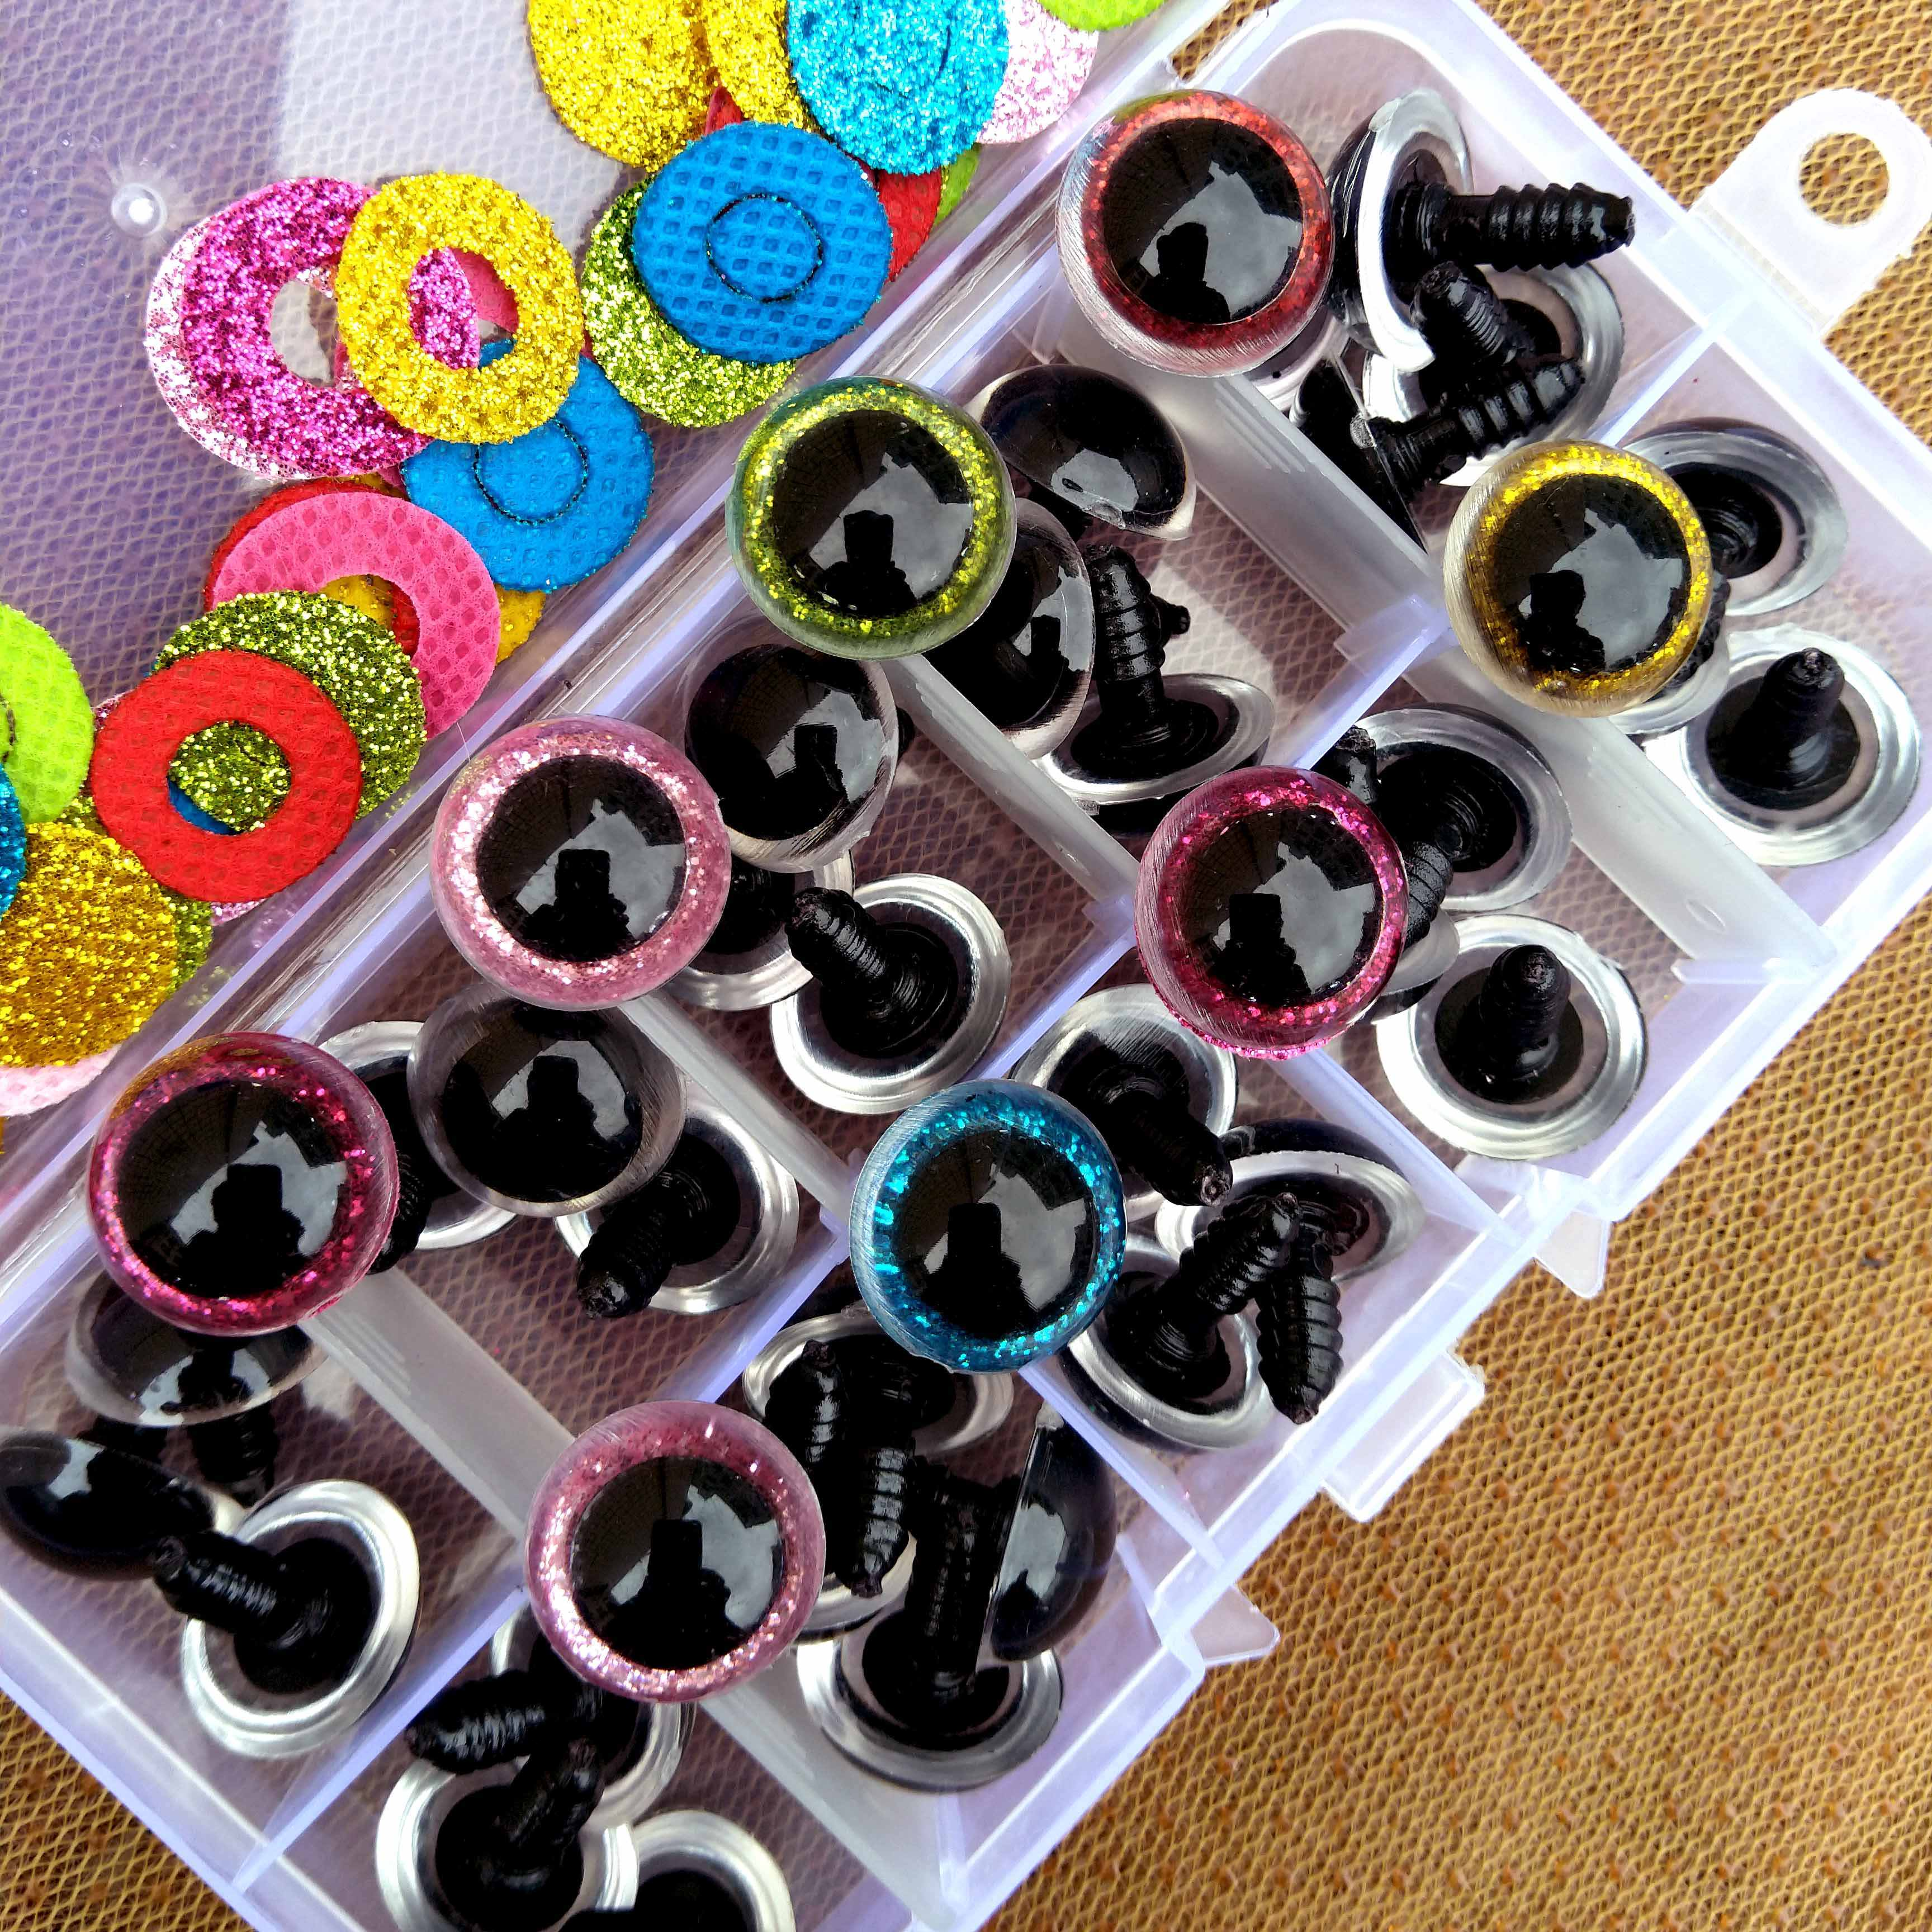 safety plastic colorful doll eyes for Crochet stuffed animals ...   3456x3456